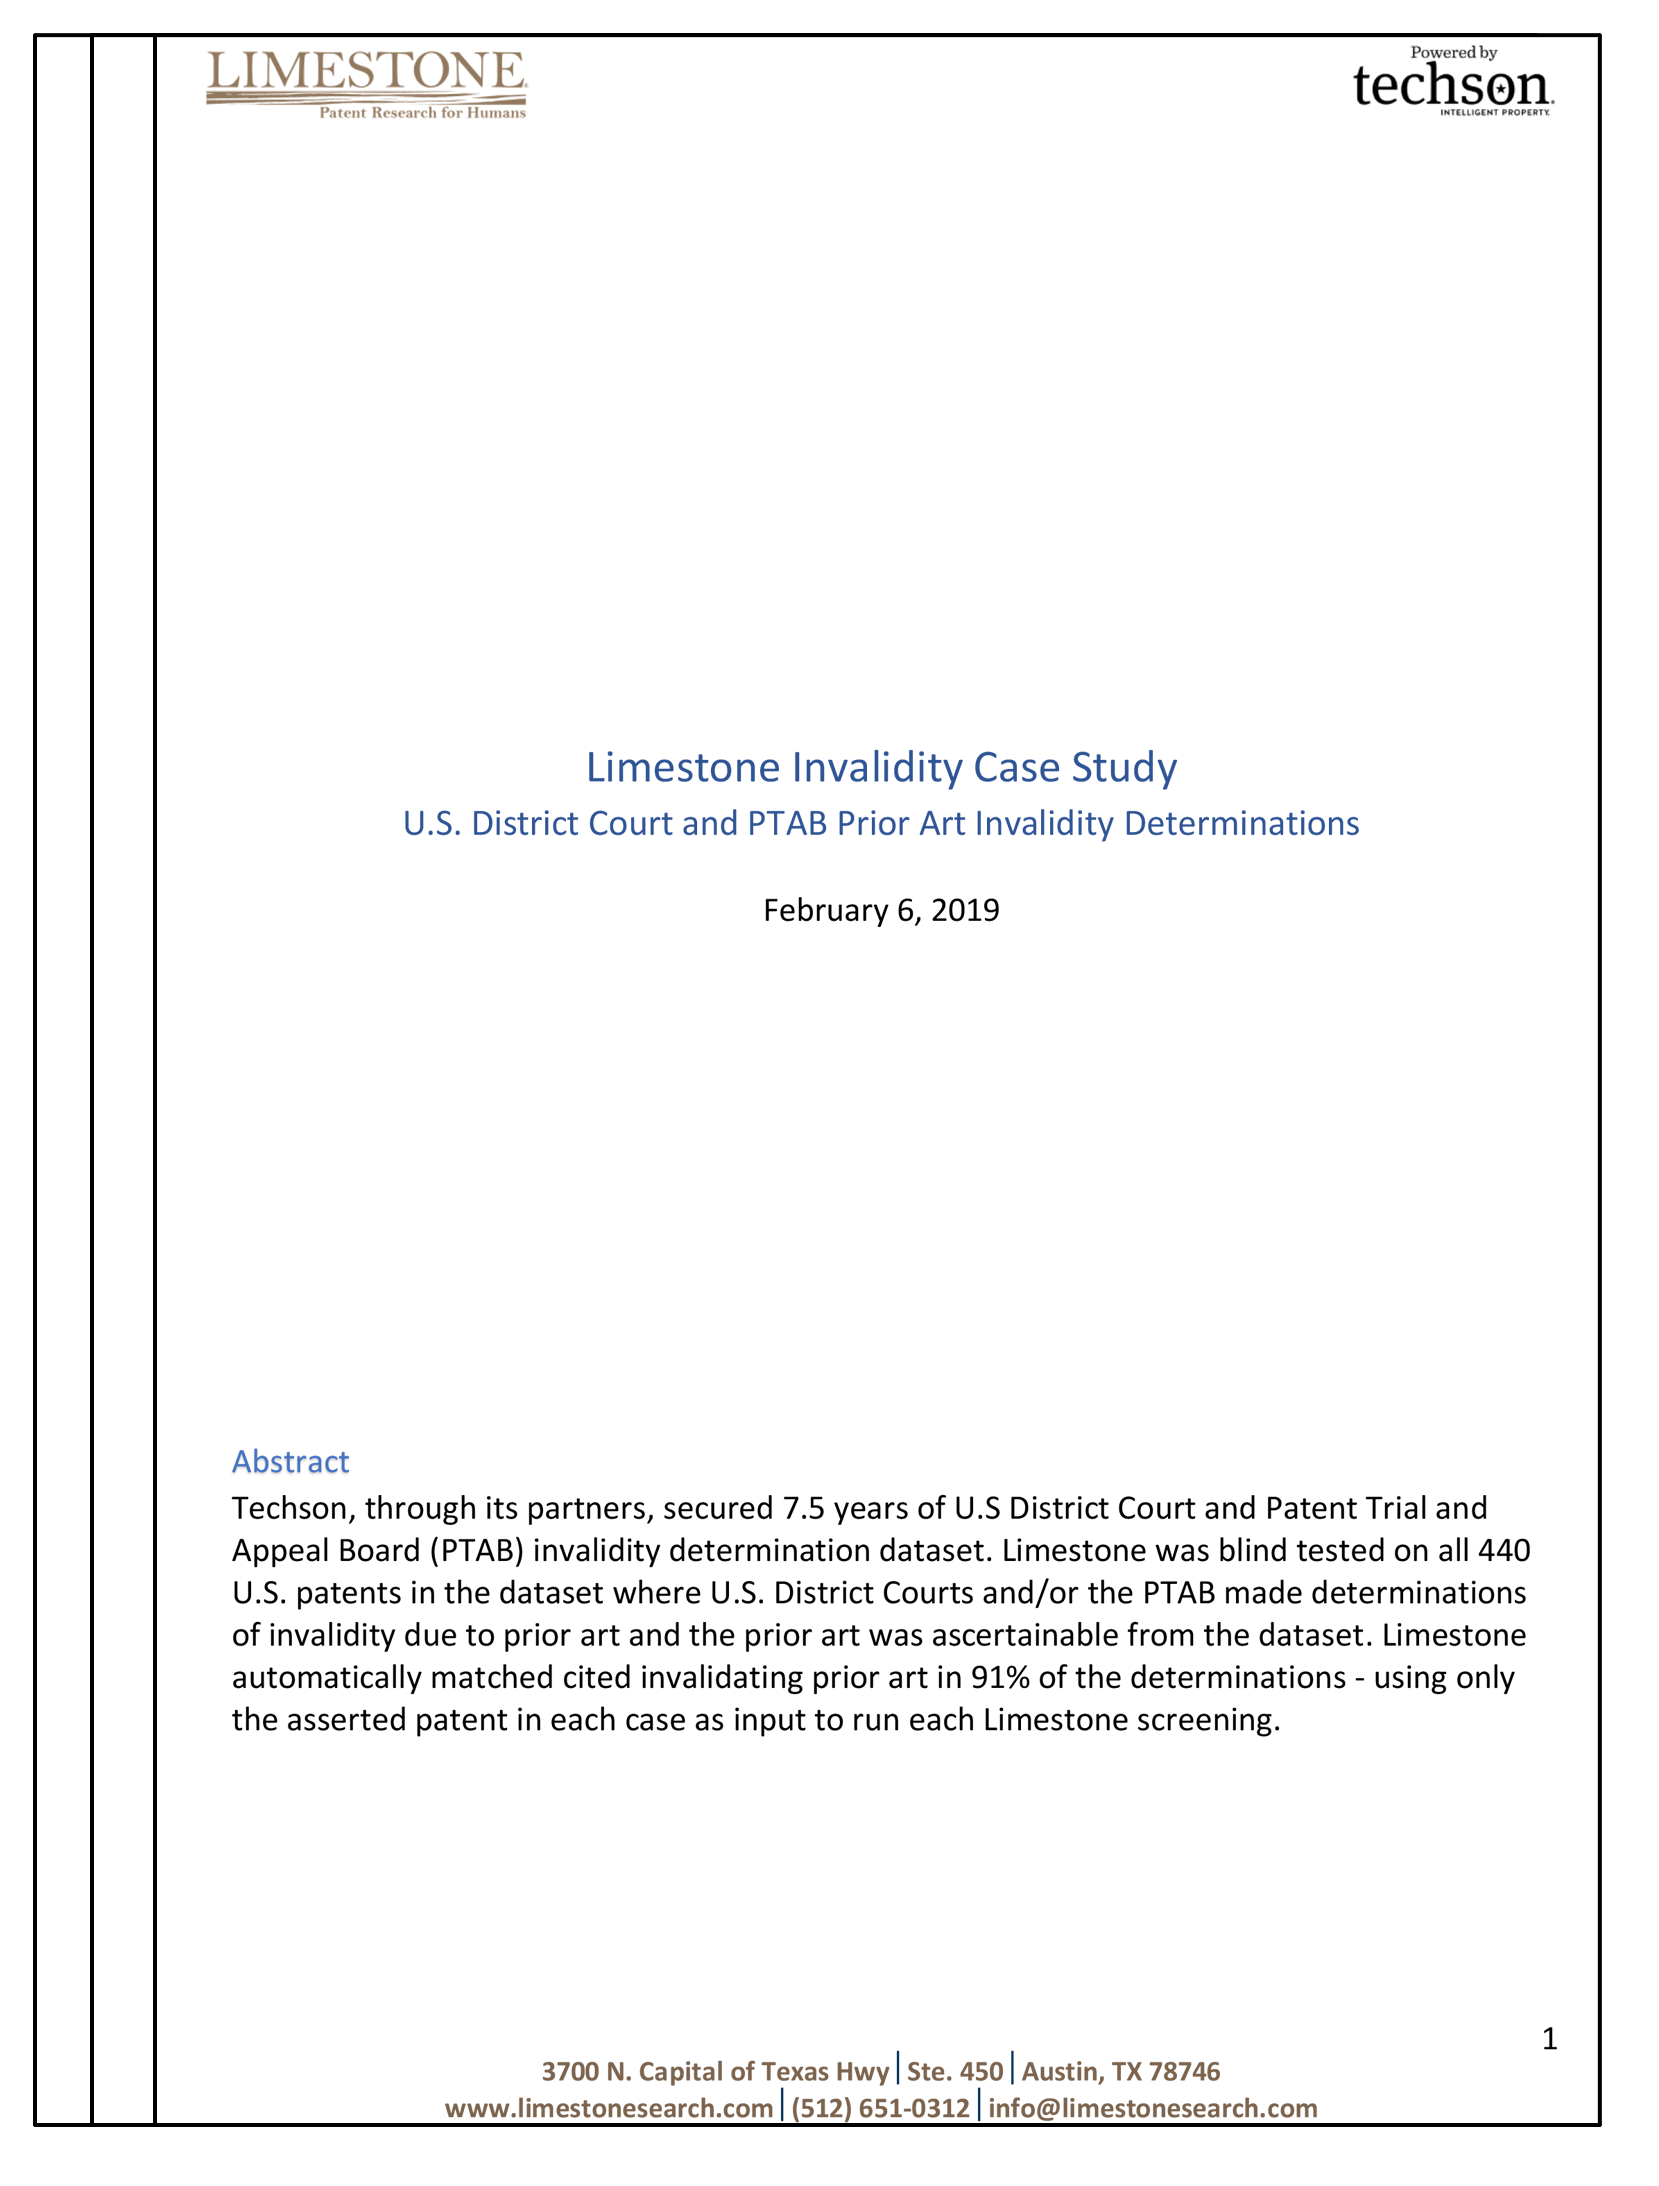 White Paper - We tested Limestone in all technology areas against 7.5 years of District Court and PTAB Invalidity Determinations for Anticipation/Obviousness. Limestone uncovered the cited invalidating prior art references in 91% of the 440 determinations.